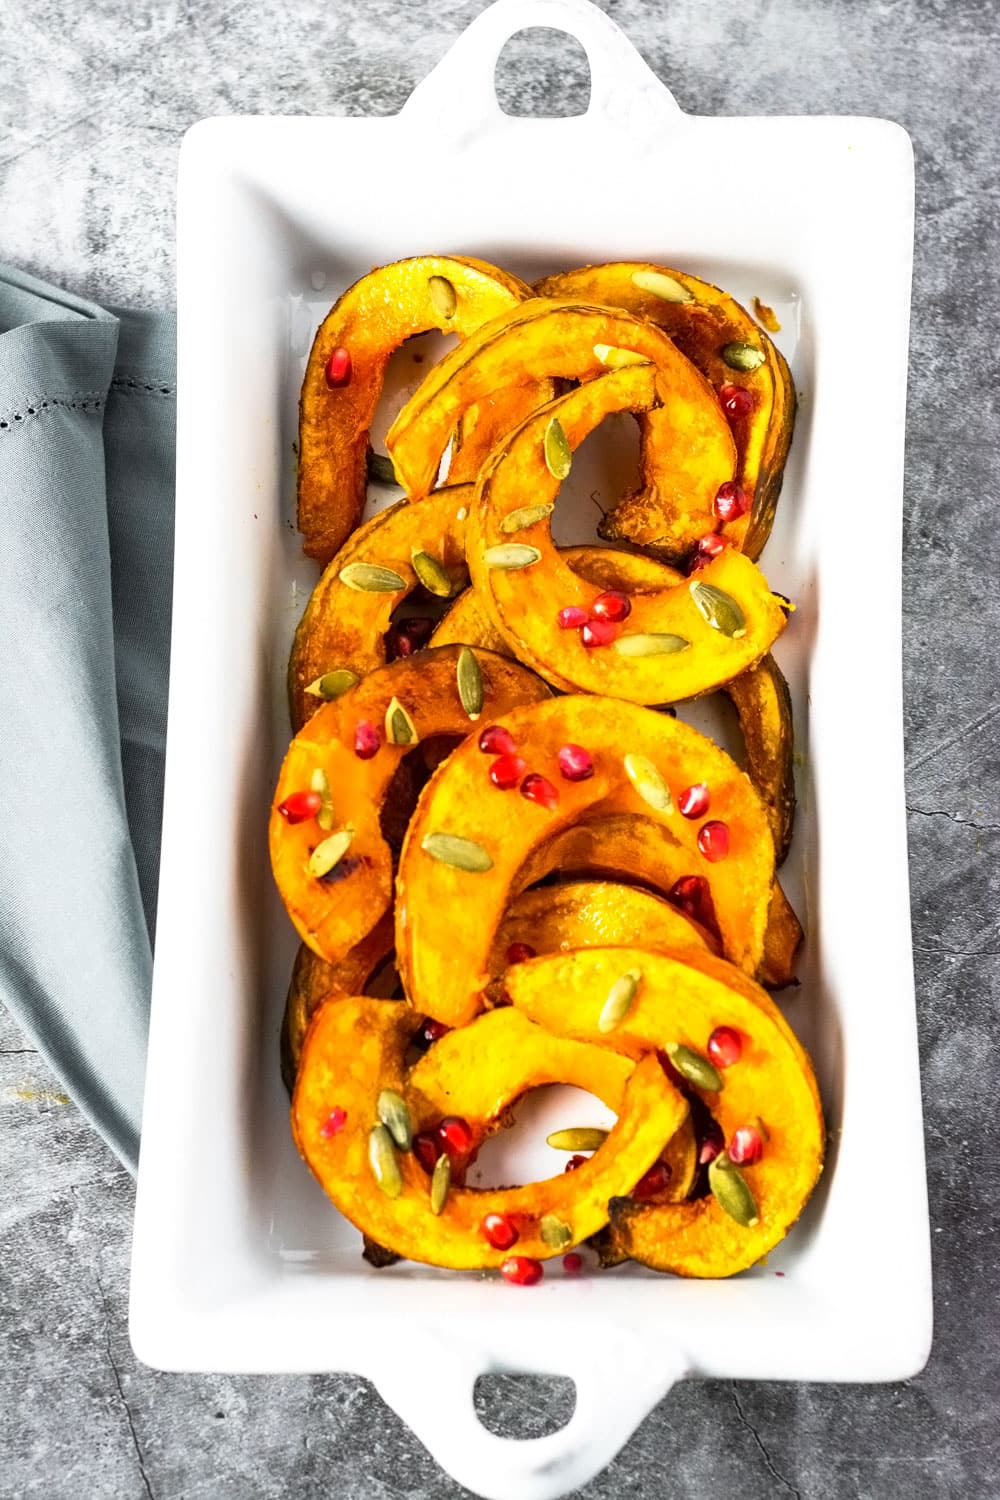 Roasted kabocha squash on a white serving dish garnished with pomegranate and pumpkin seeds, with a grey napkin on a grey marbled board.